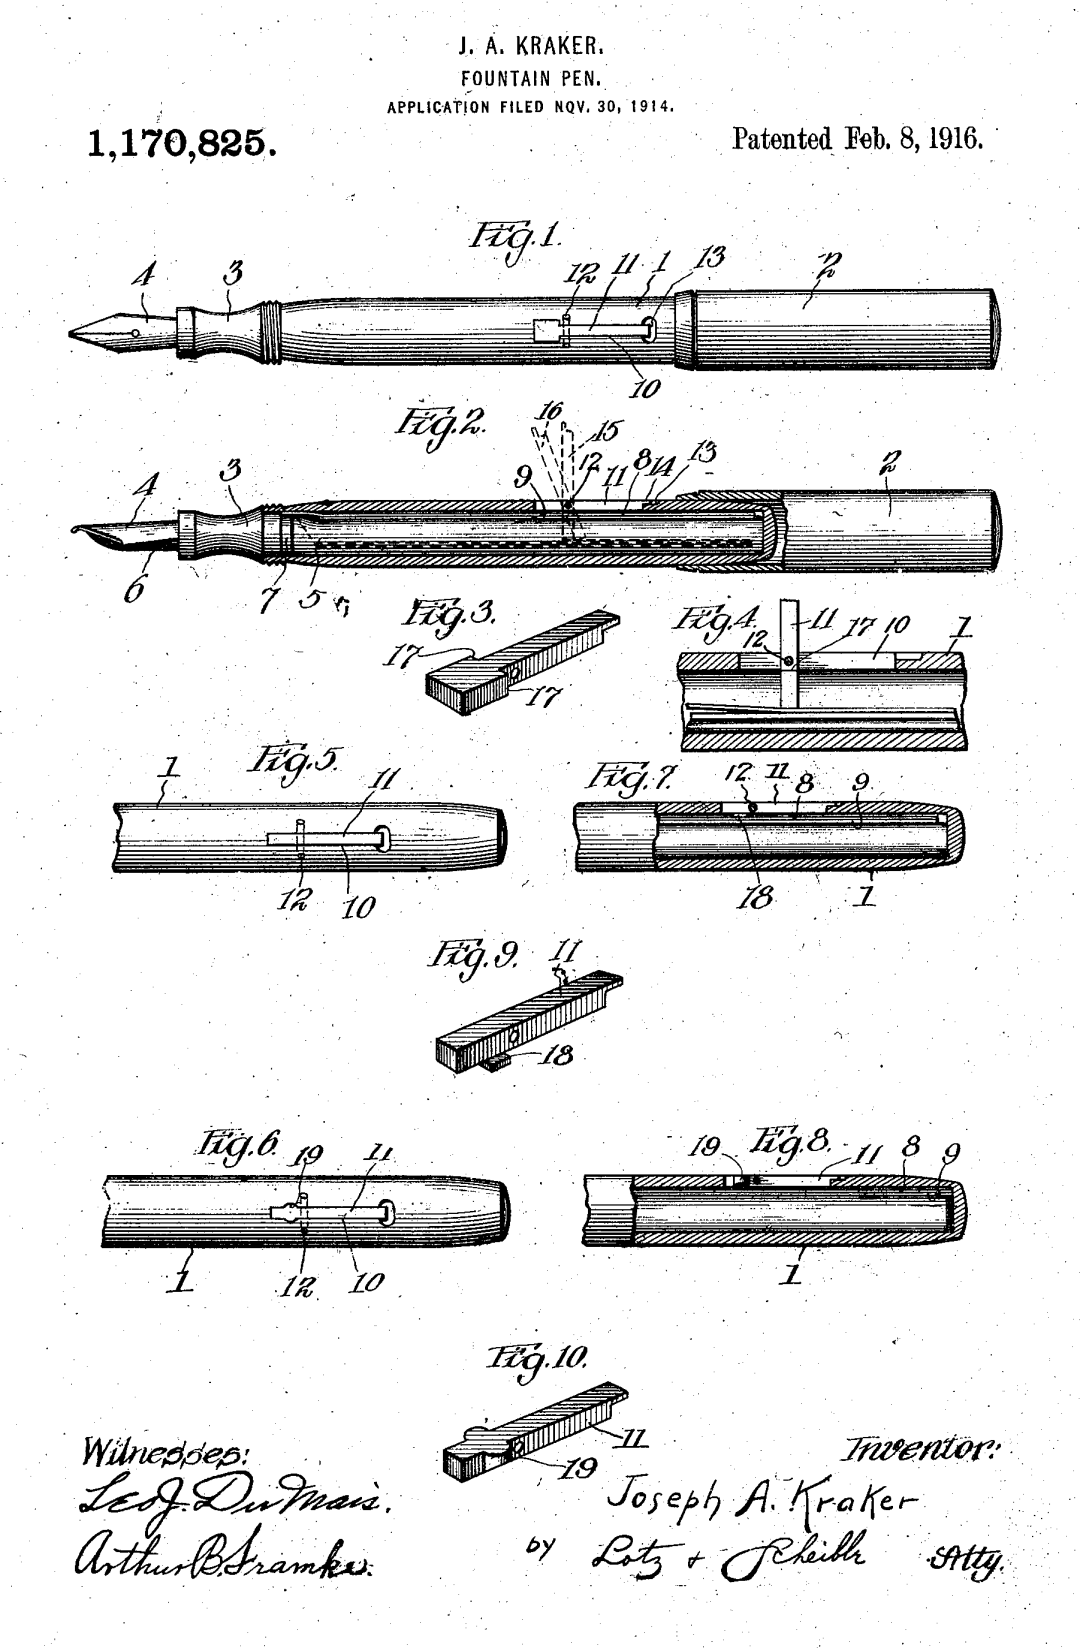 Artwork for US Patent 1,111,501 by Albert Scheible